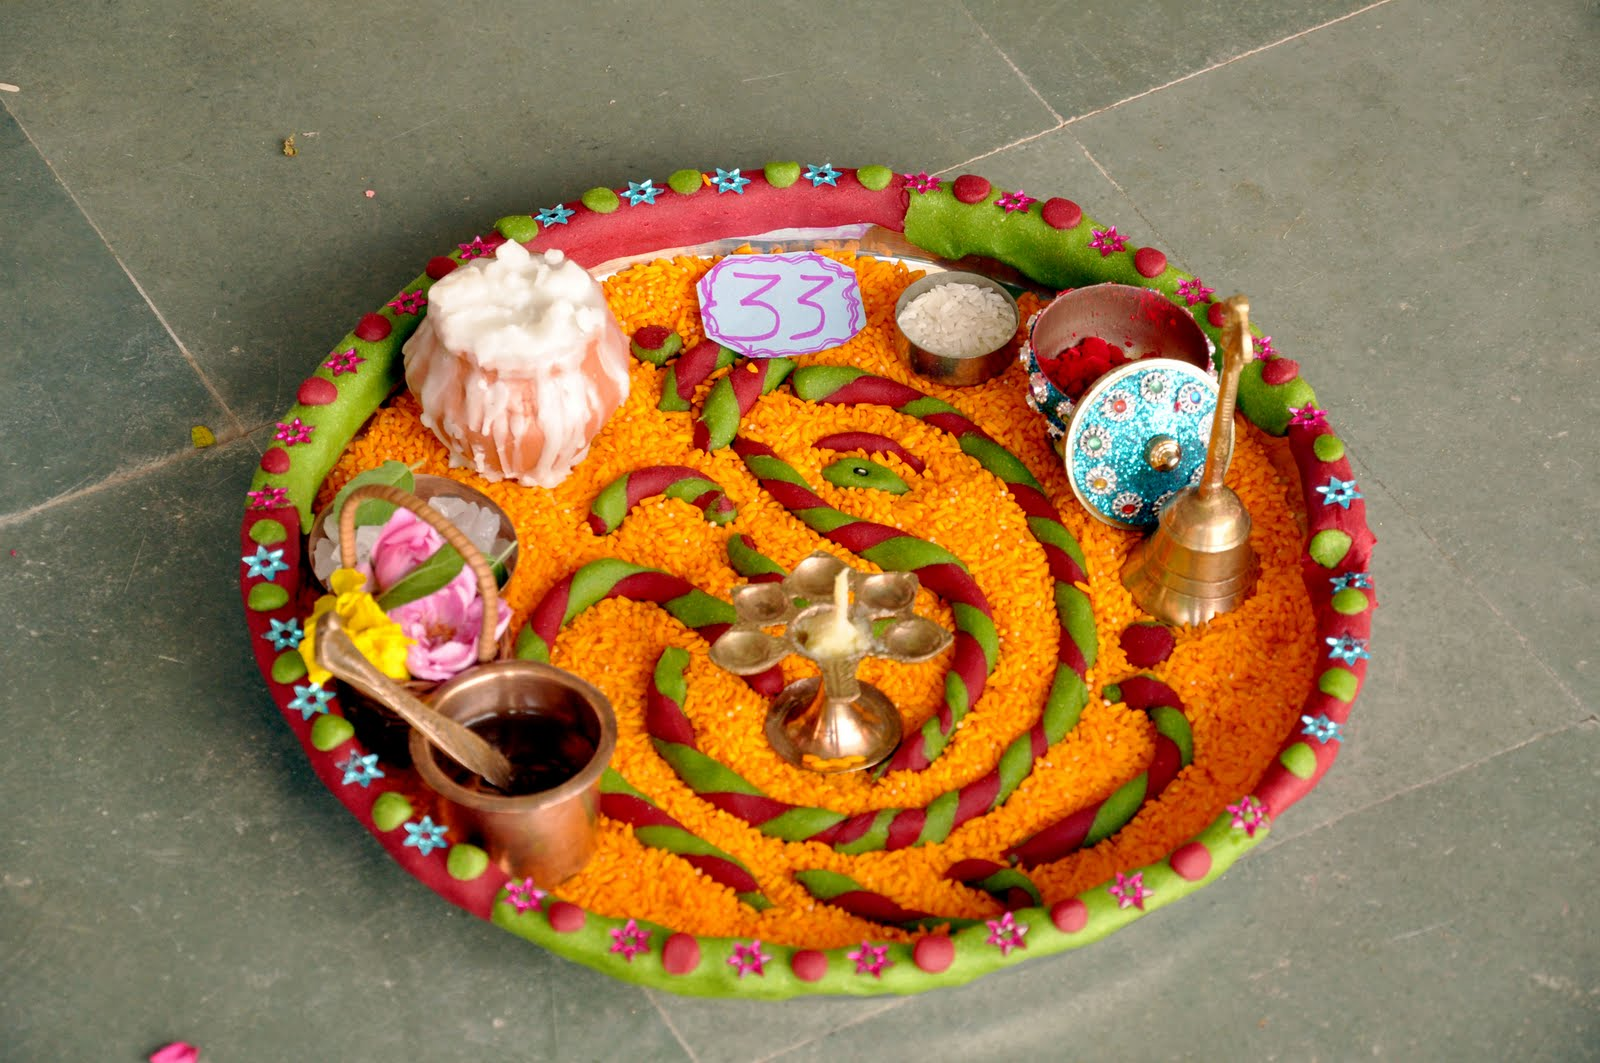 Mammy bachcha aarati thali competition for Aarti thali decoration with flowers